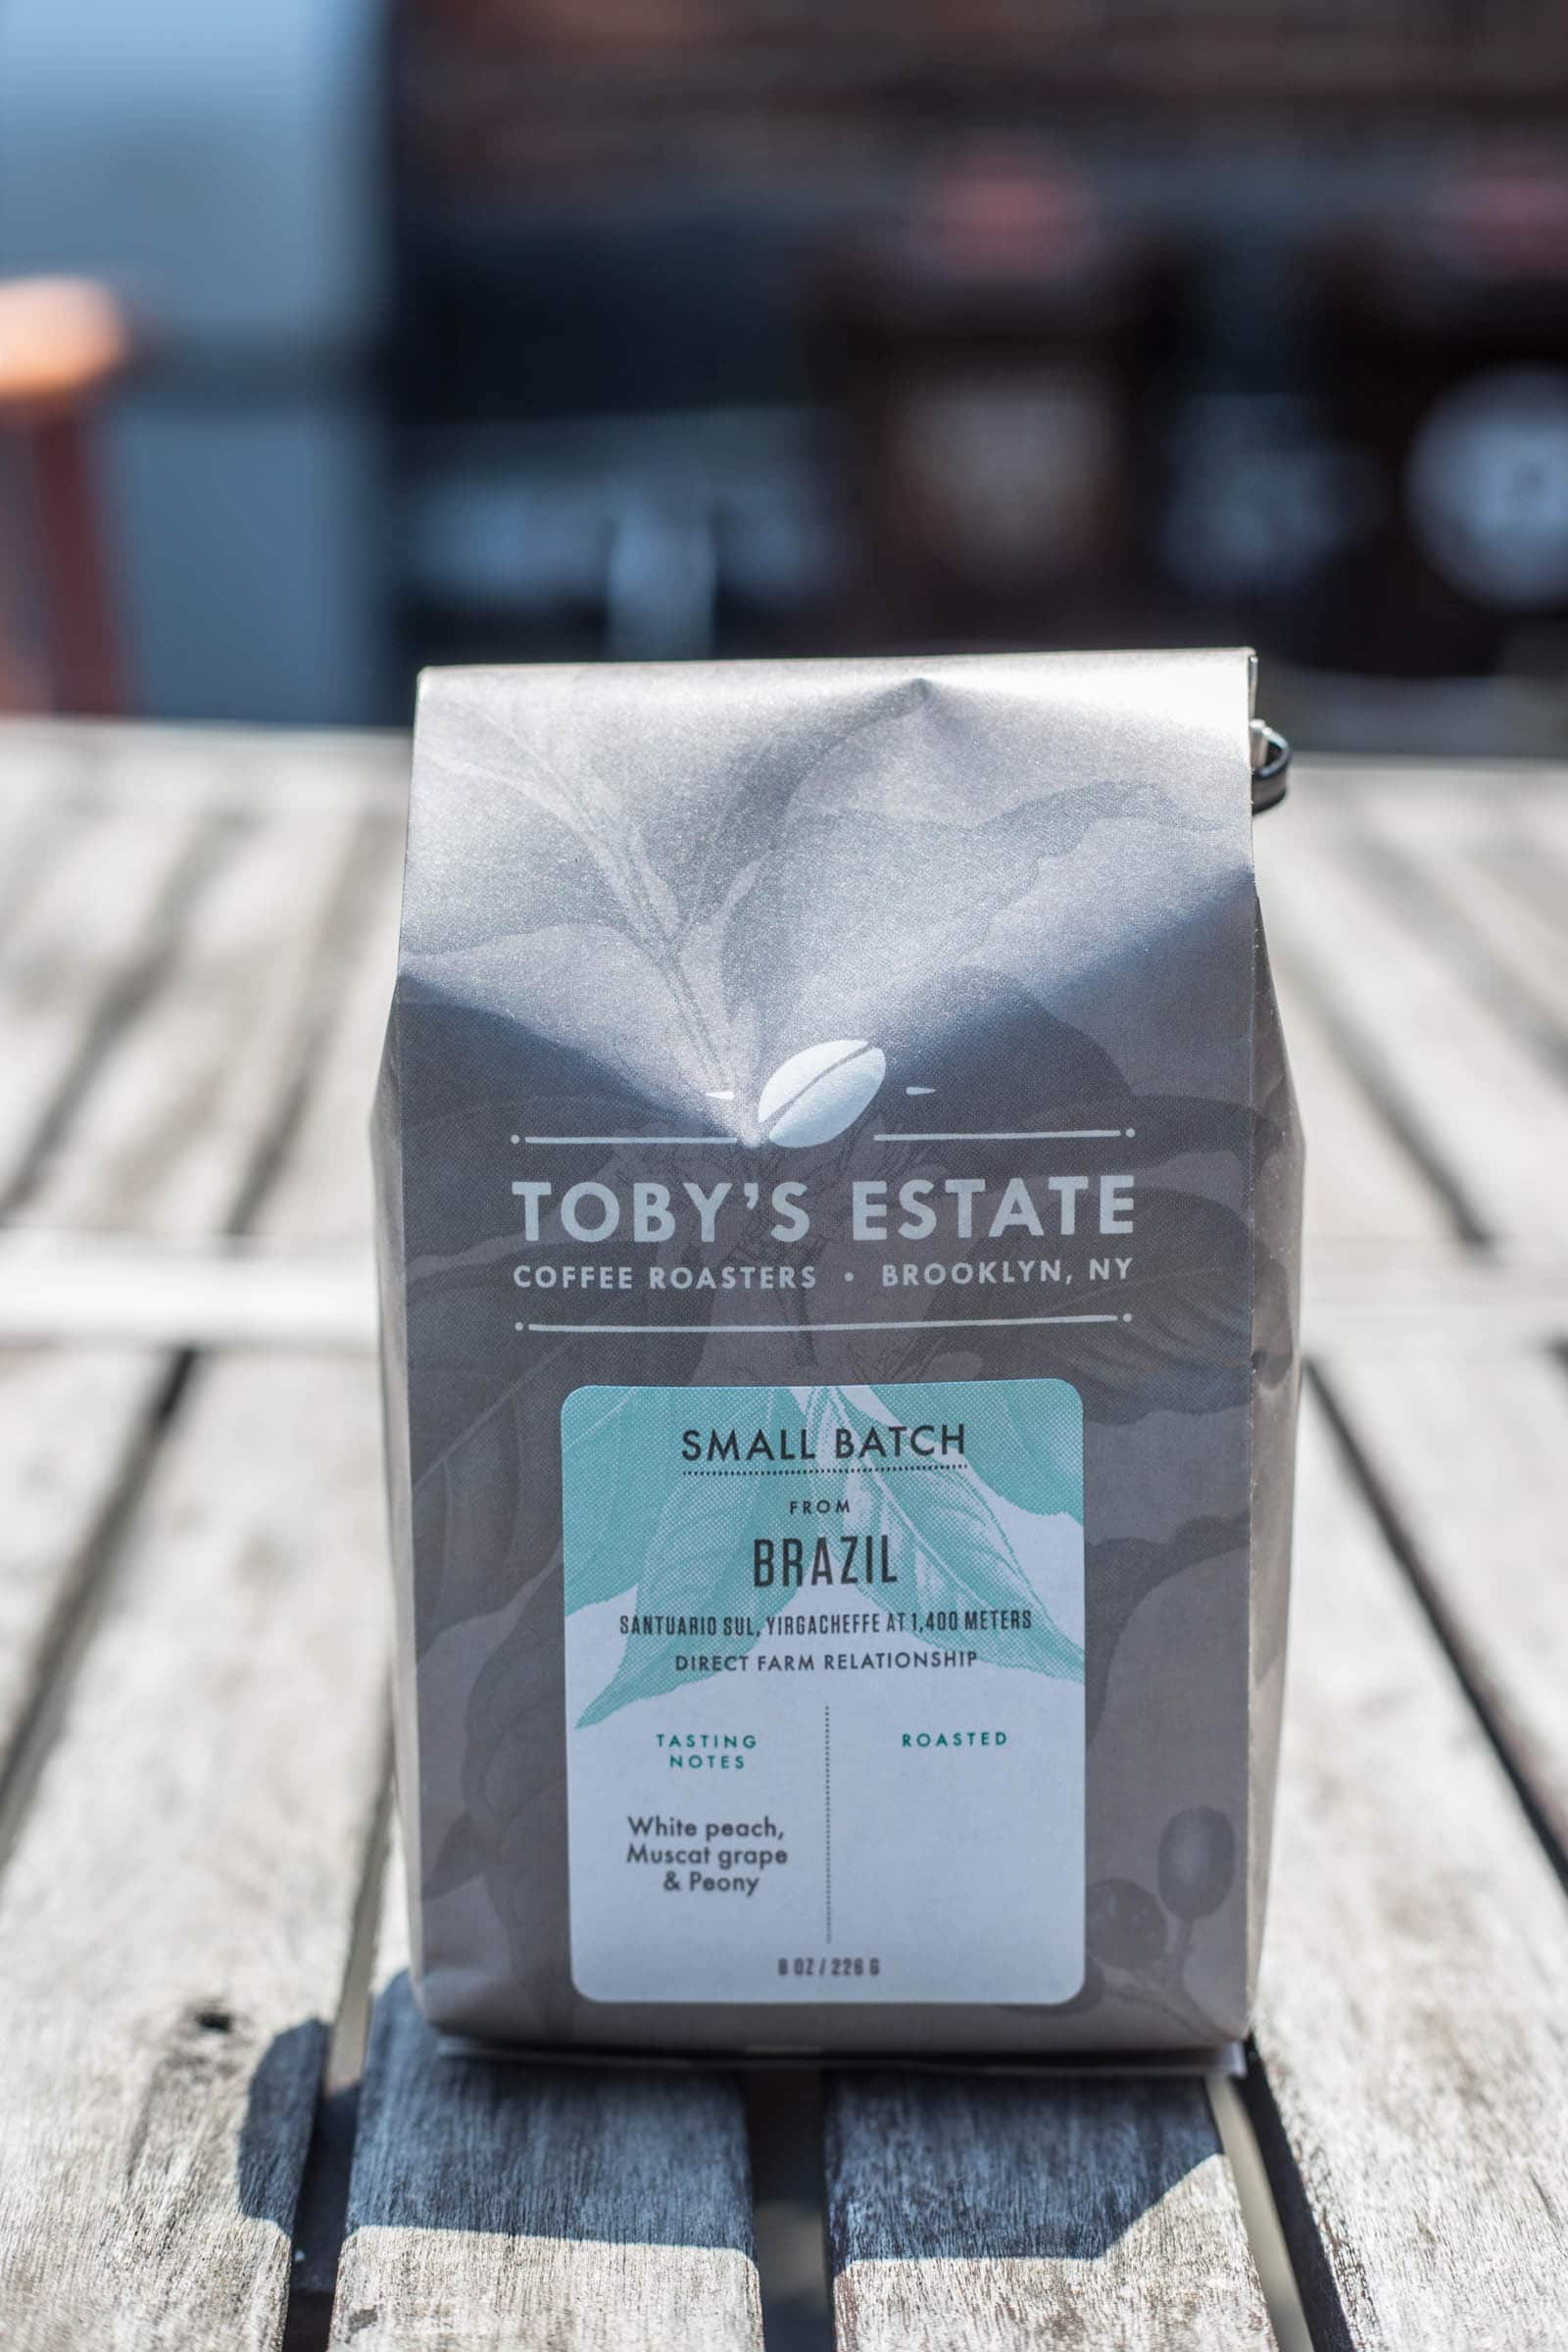 Toby's Estate Coffee Launches Santuario Sul